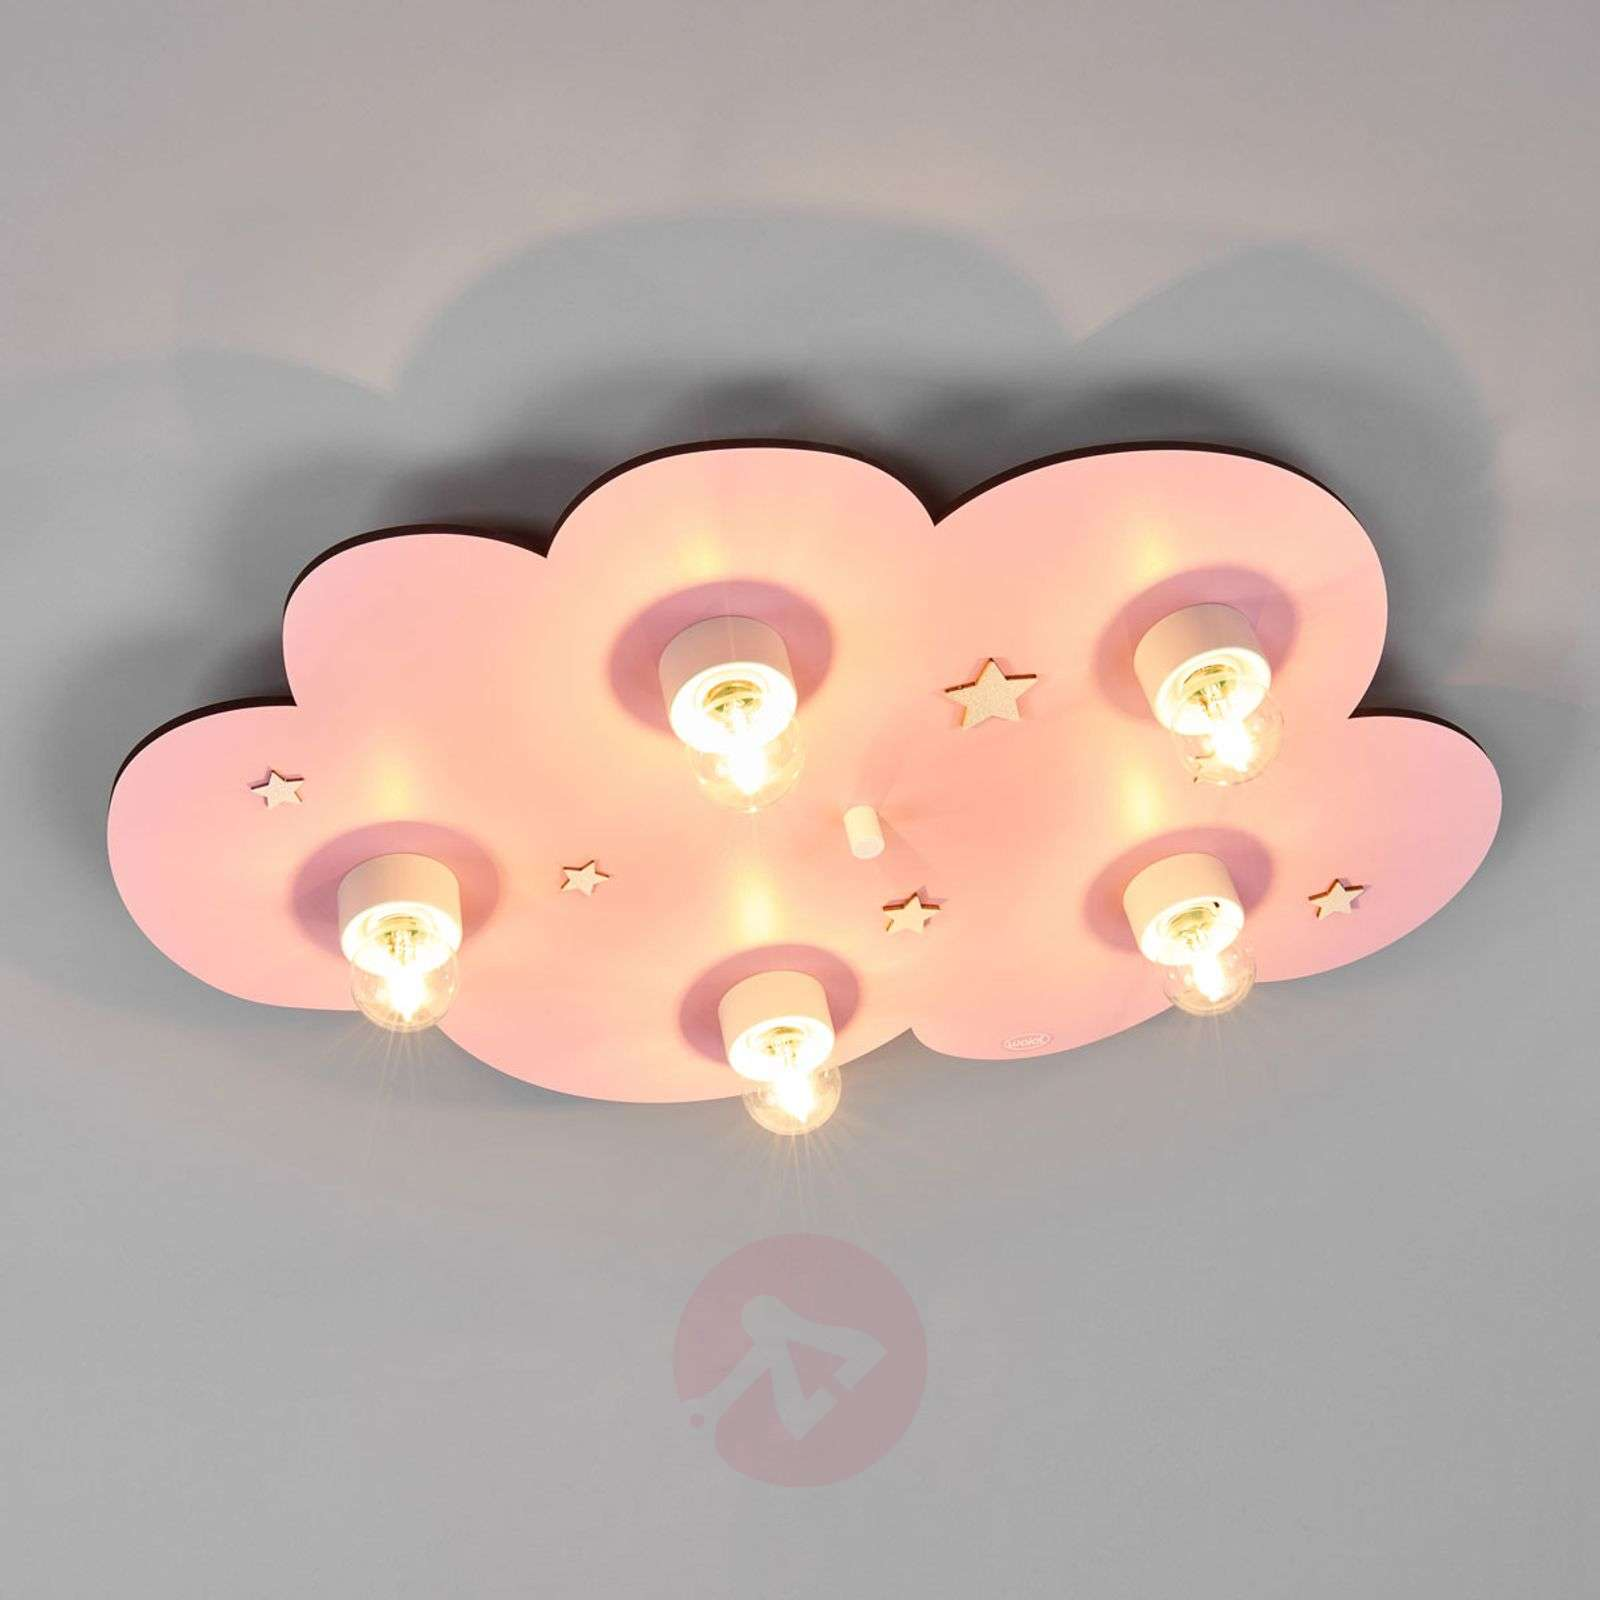 kids ceiling lighting. Dreamy Pink Cloud Children\u0027s Ceiling Light Kids Lighting